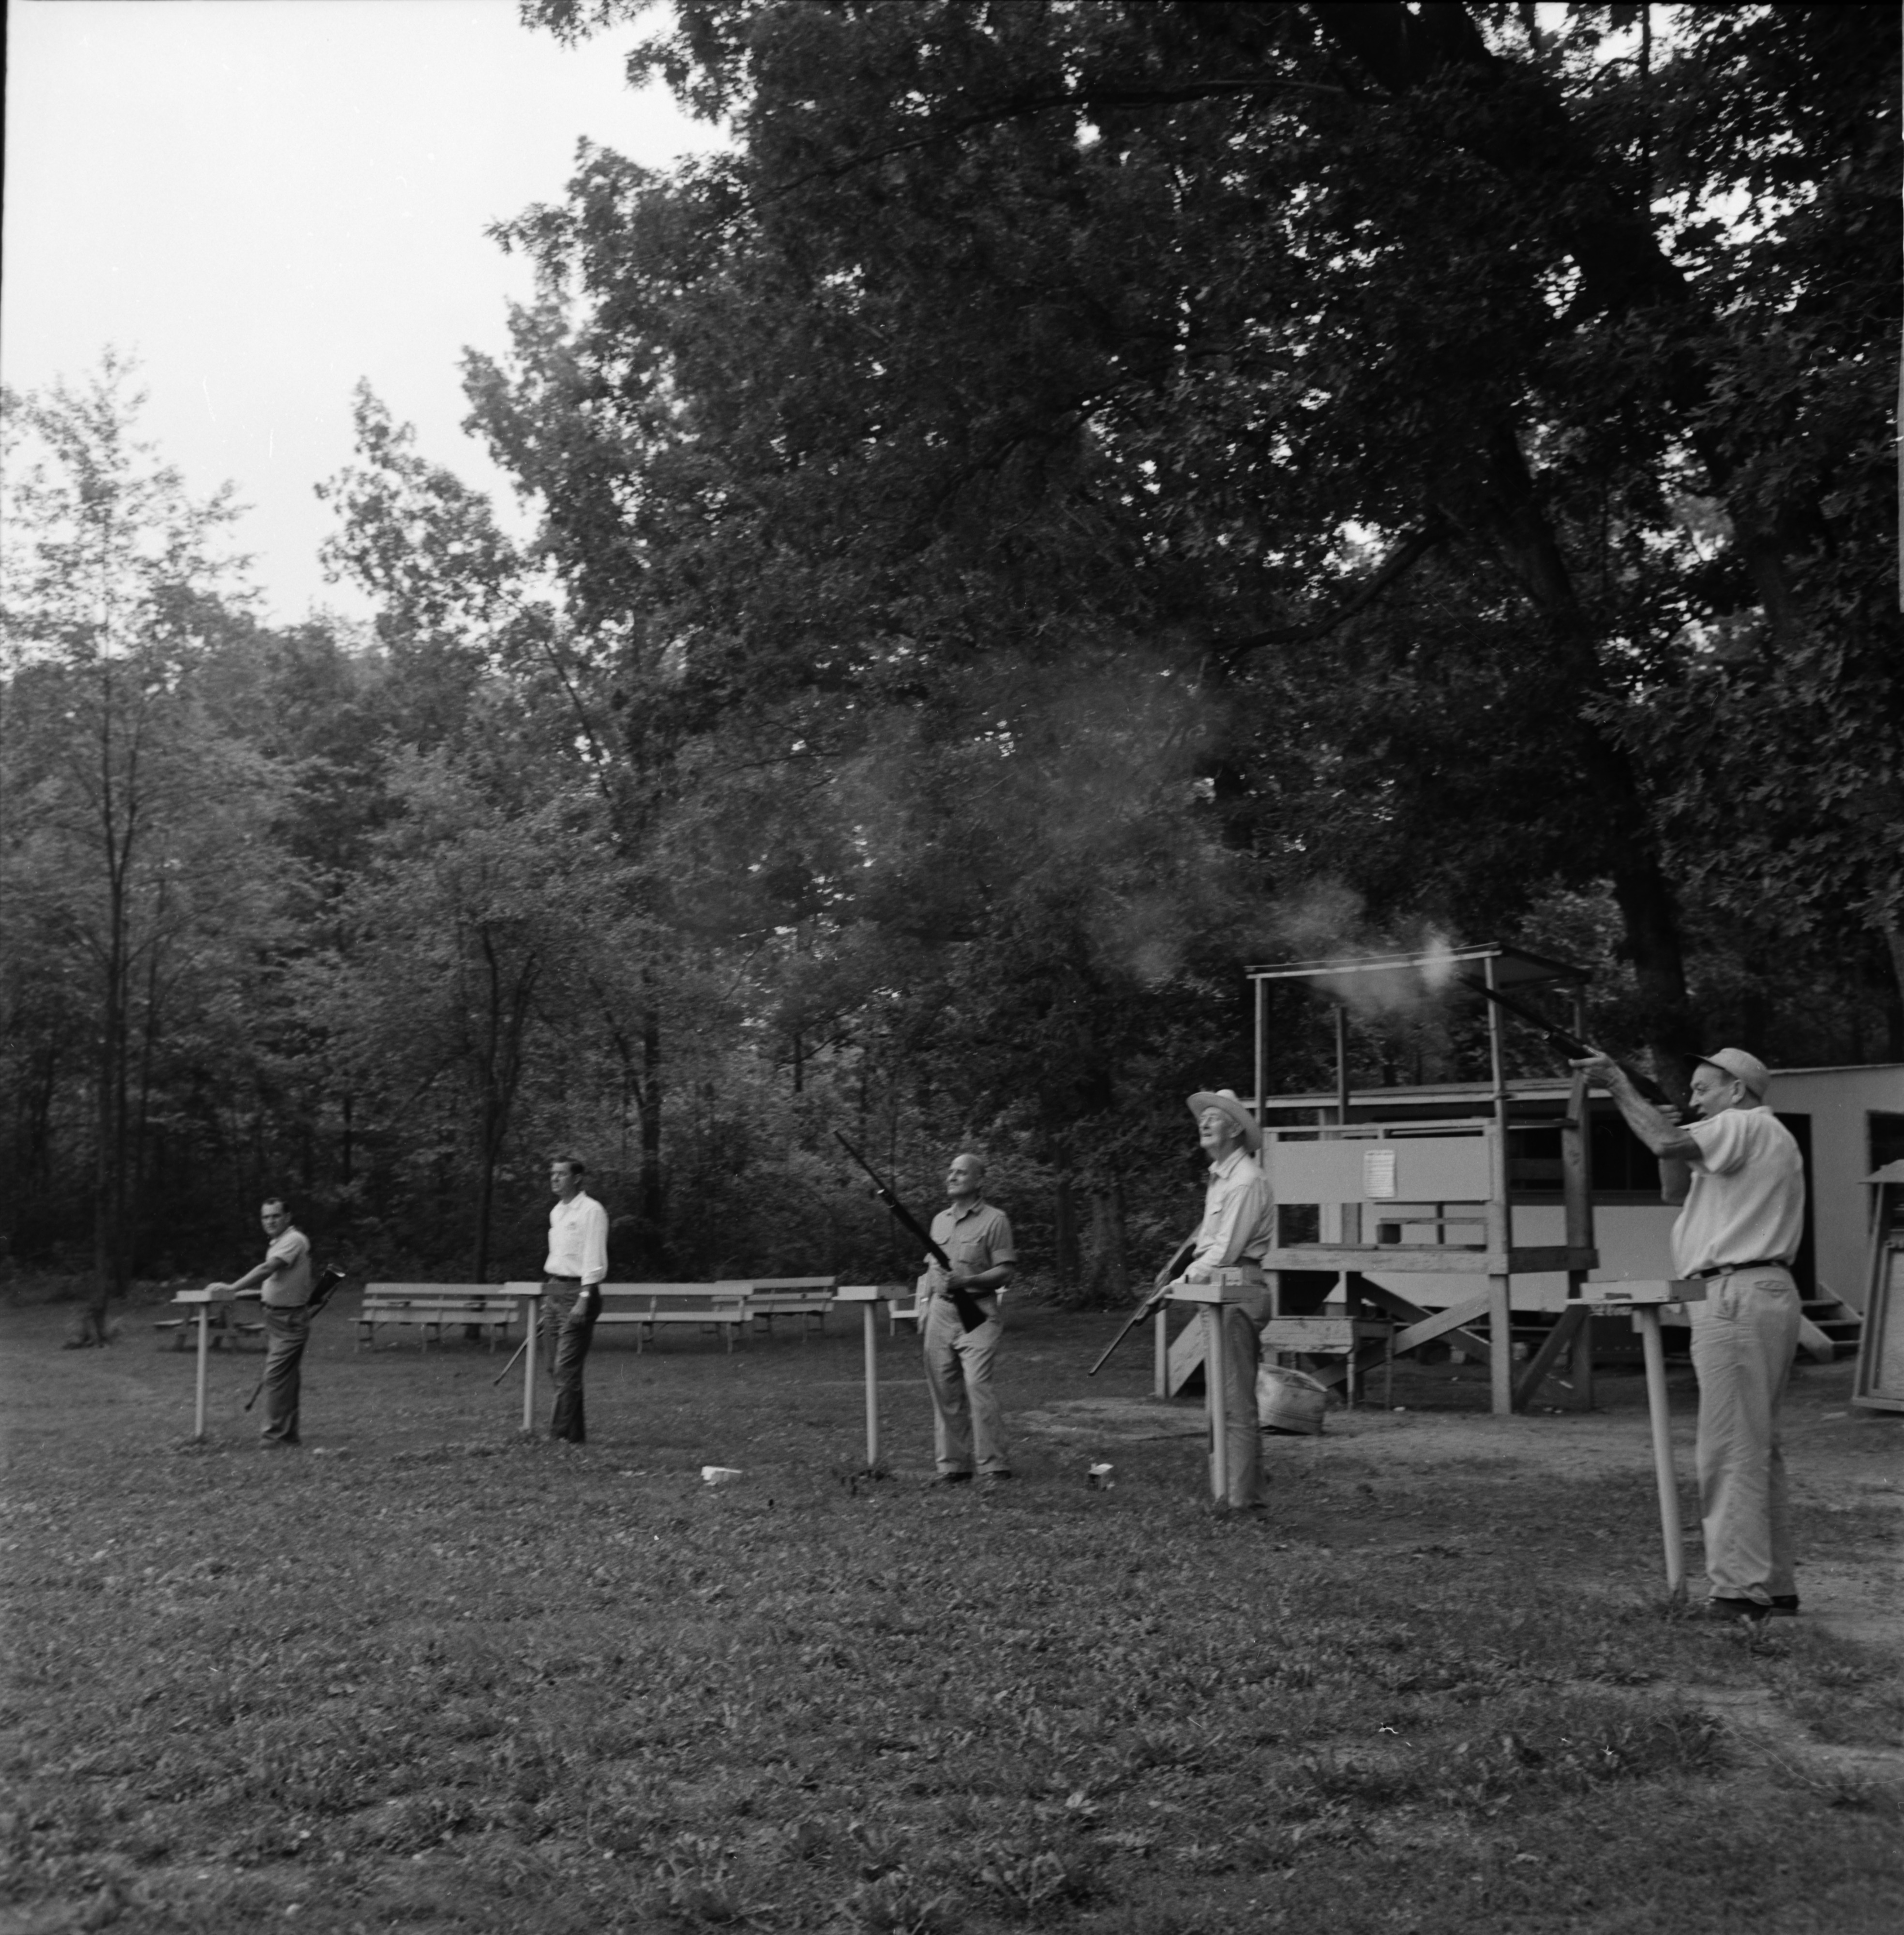 Moose Sportsmen Trapshooting, September 1965 image